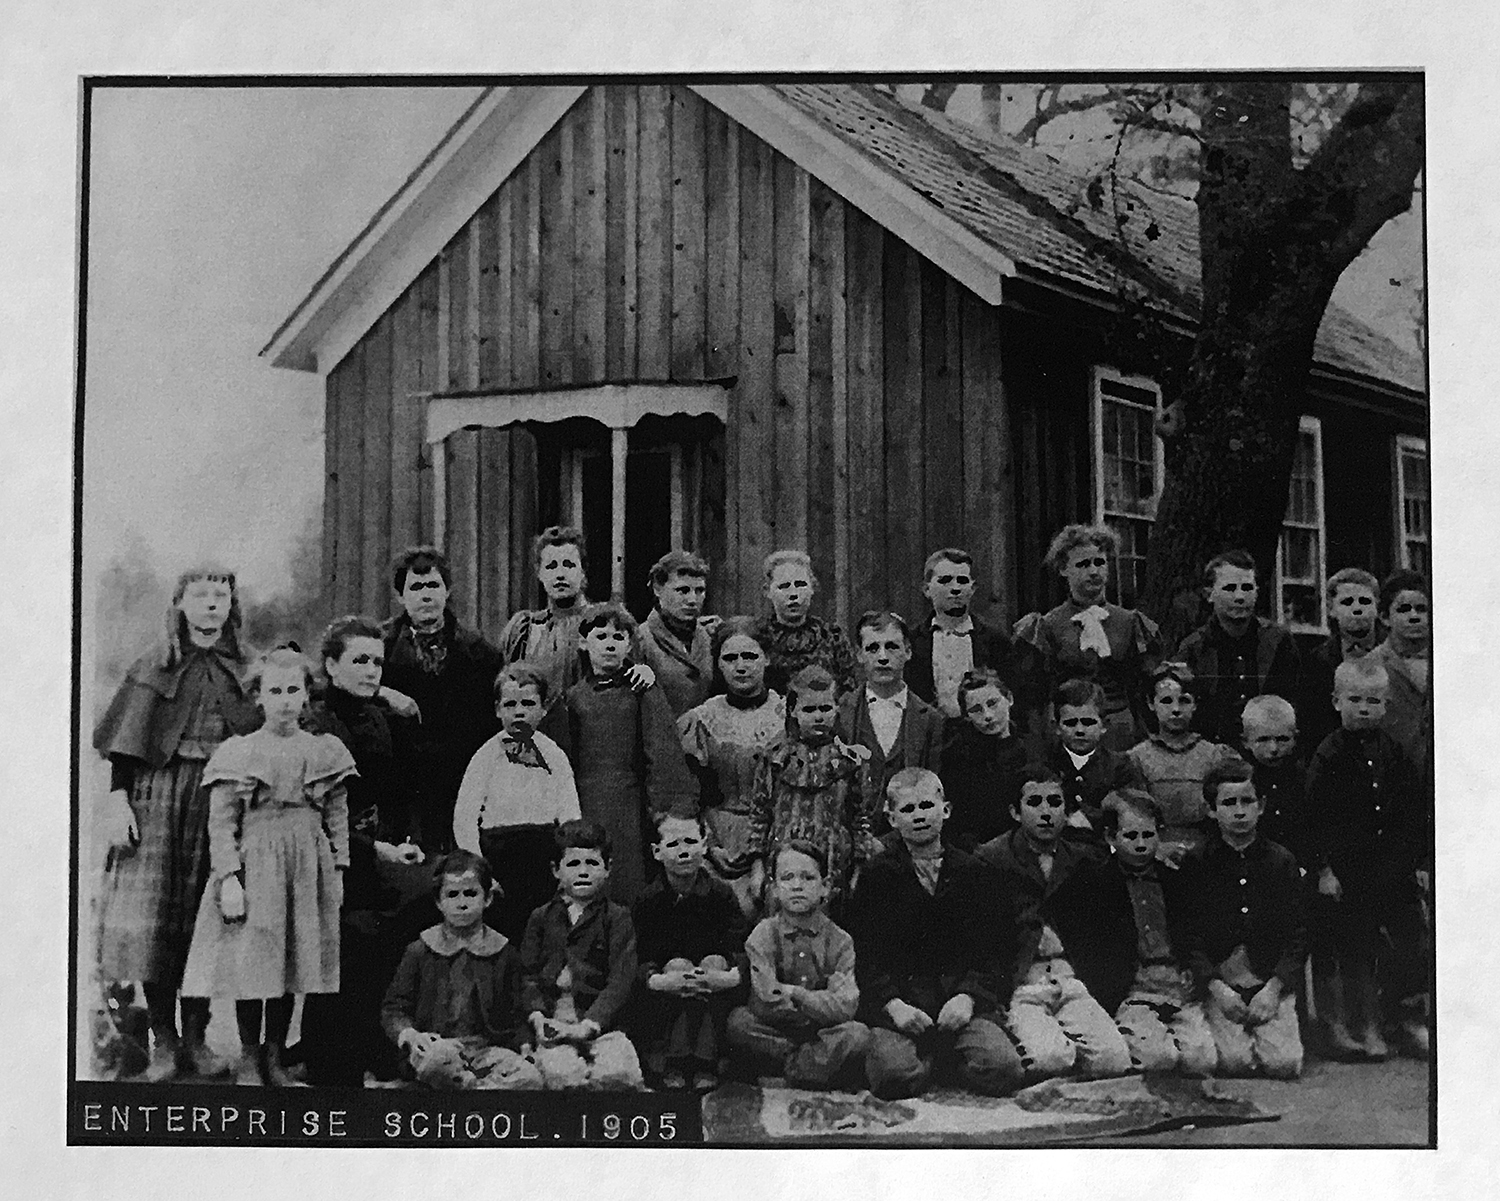 Enterprise School 1905